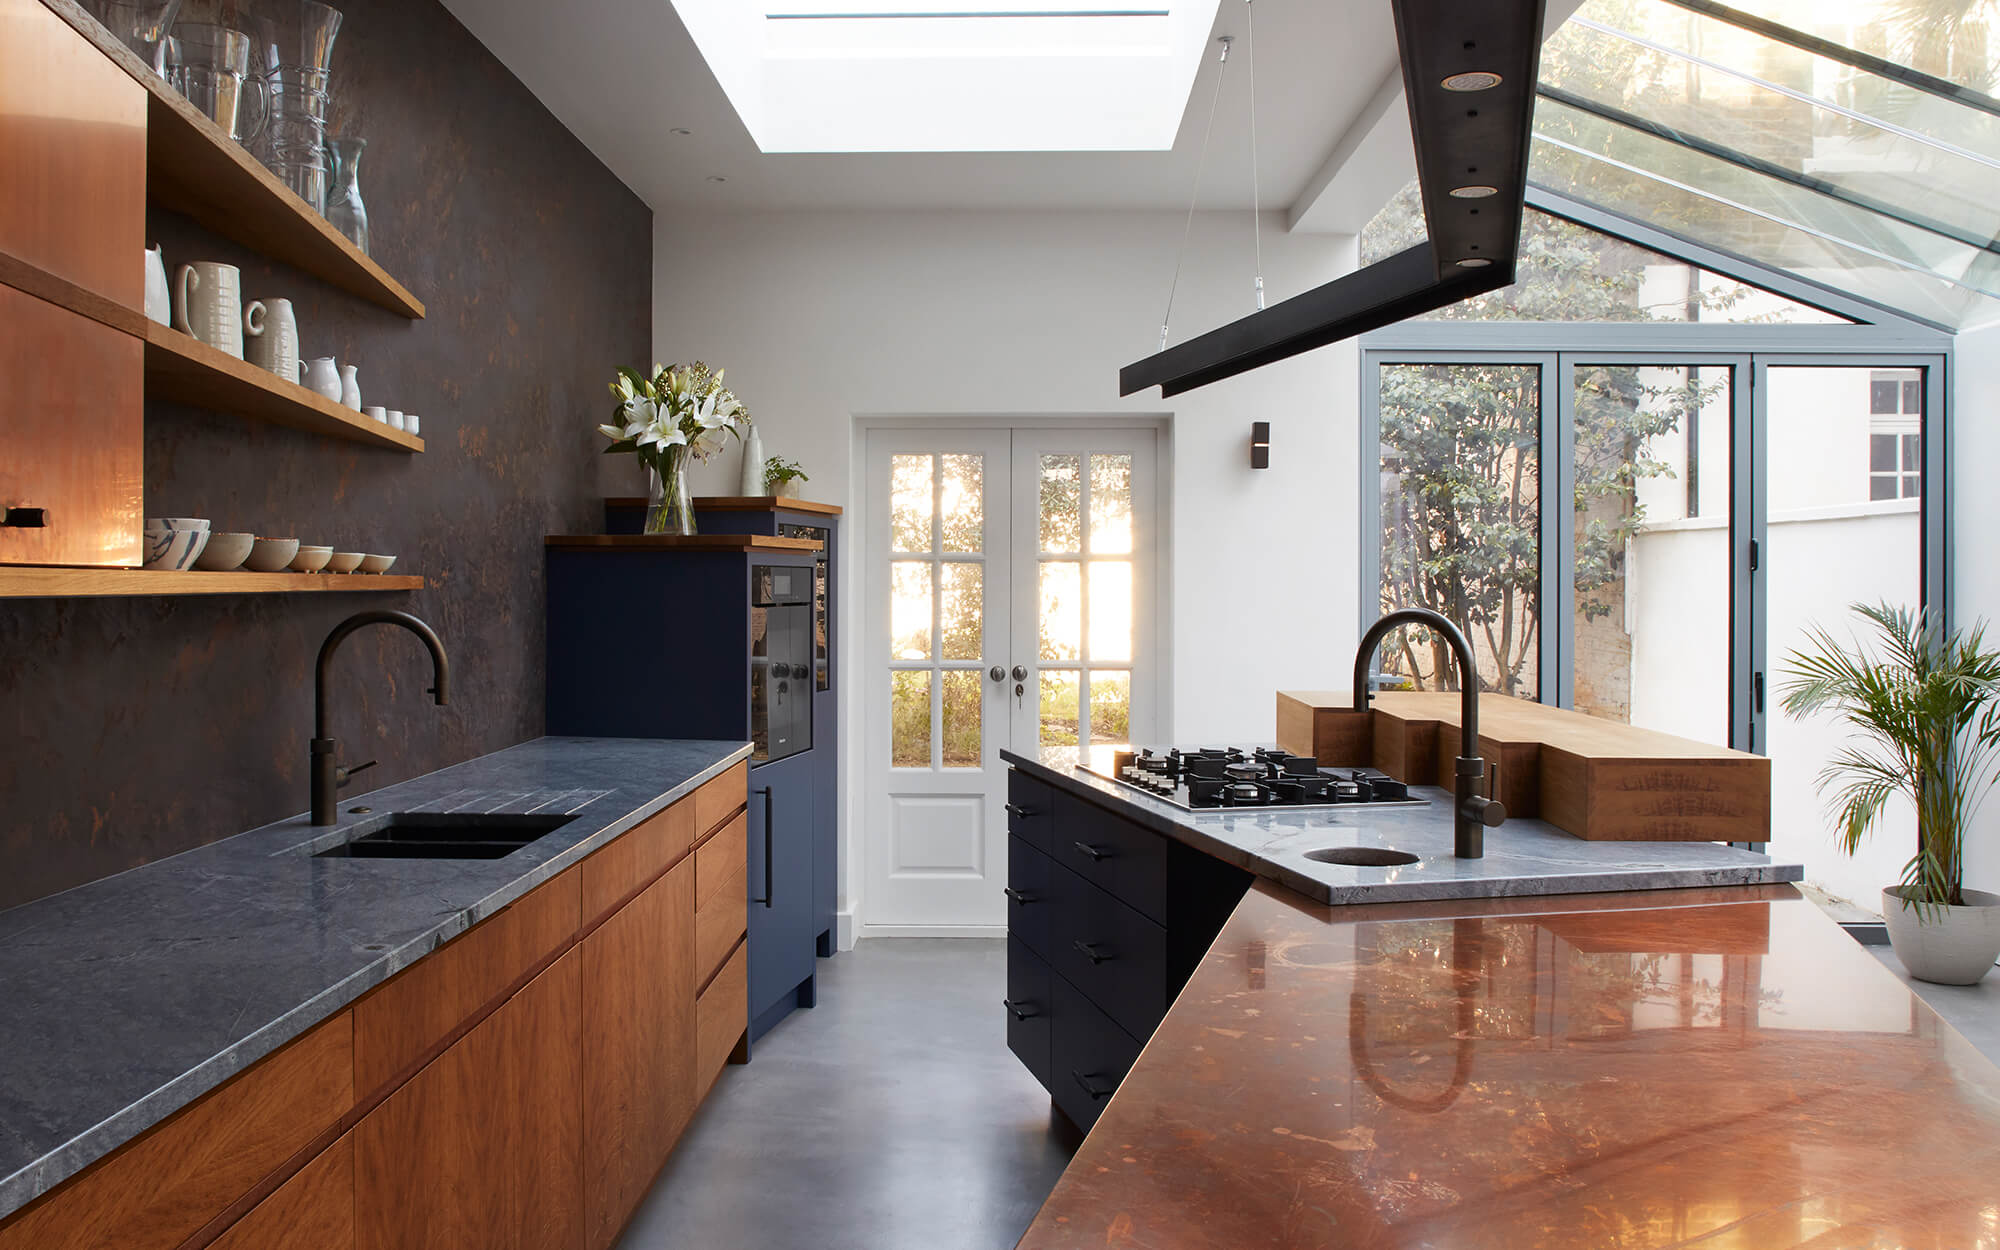 A fun ergonomic kitchen with concrete and copper work surfaces